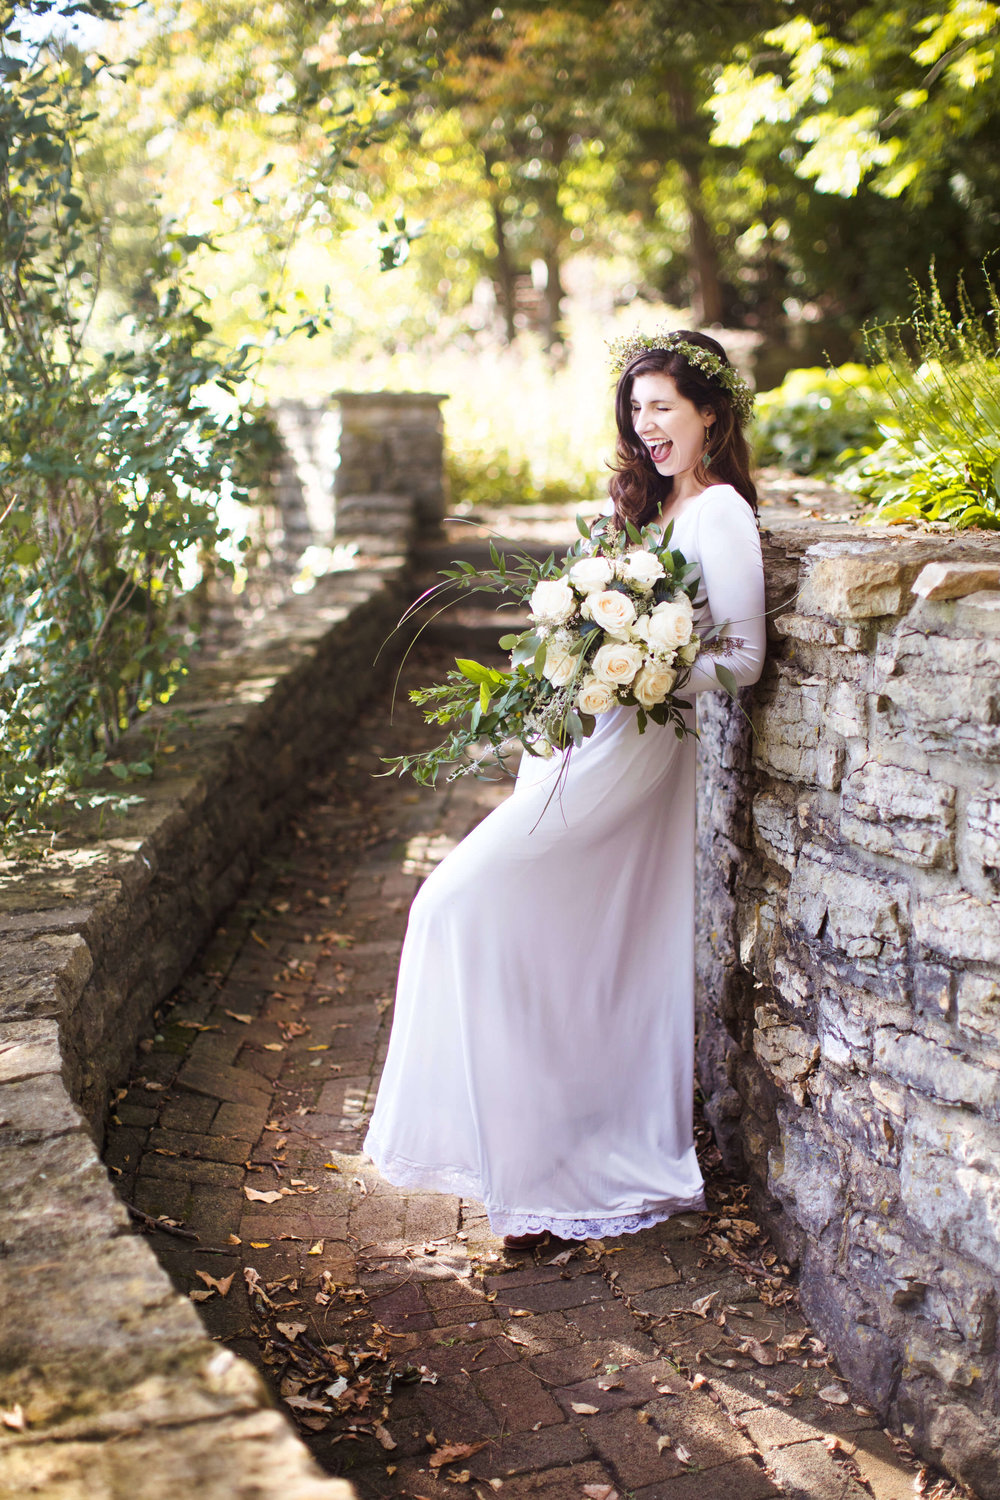 Studio KH wedding photographer | Sixpence Events and Planning, free wedding blog, free wedding help, free wedding advice | bride on the stone wall with floral crown and silk gown with lace edging | large bouquet with white and greens